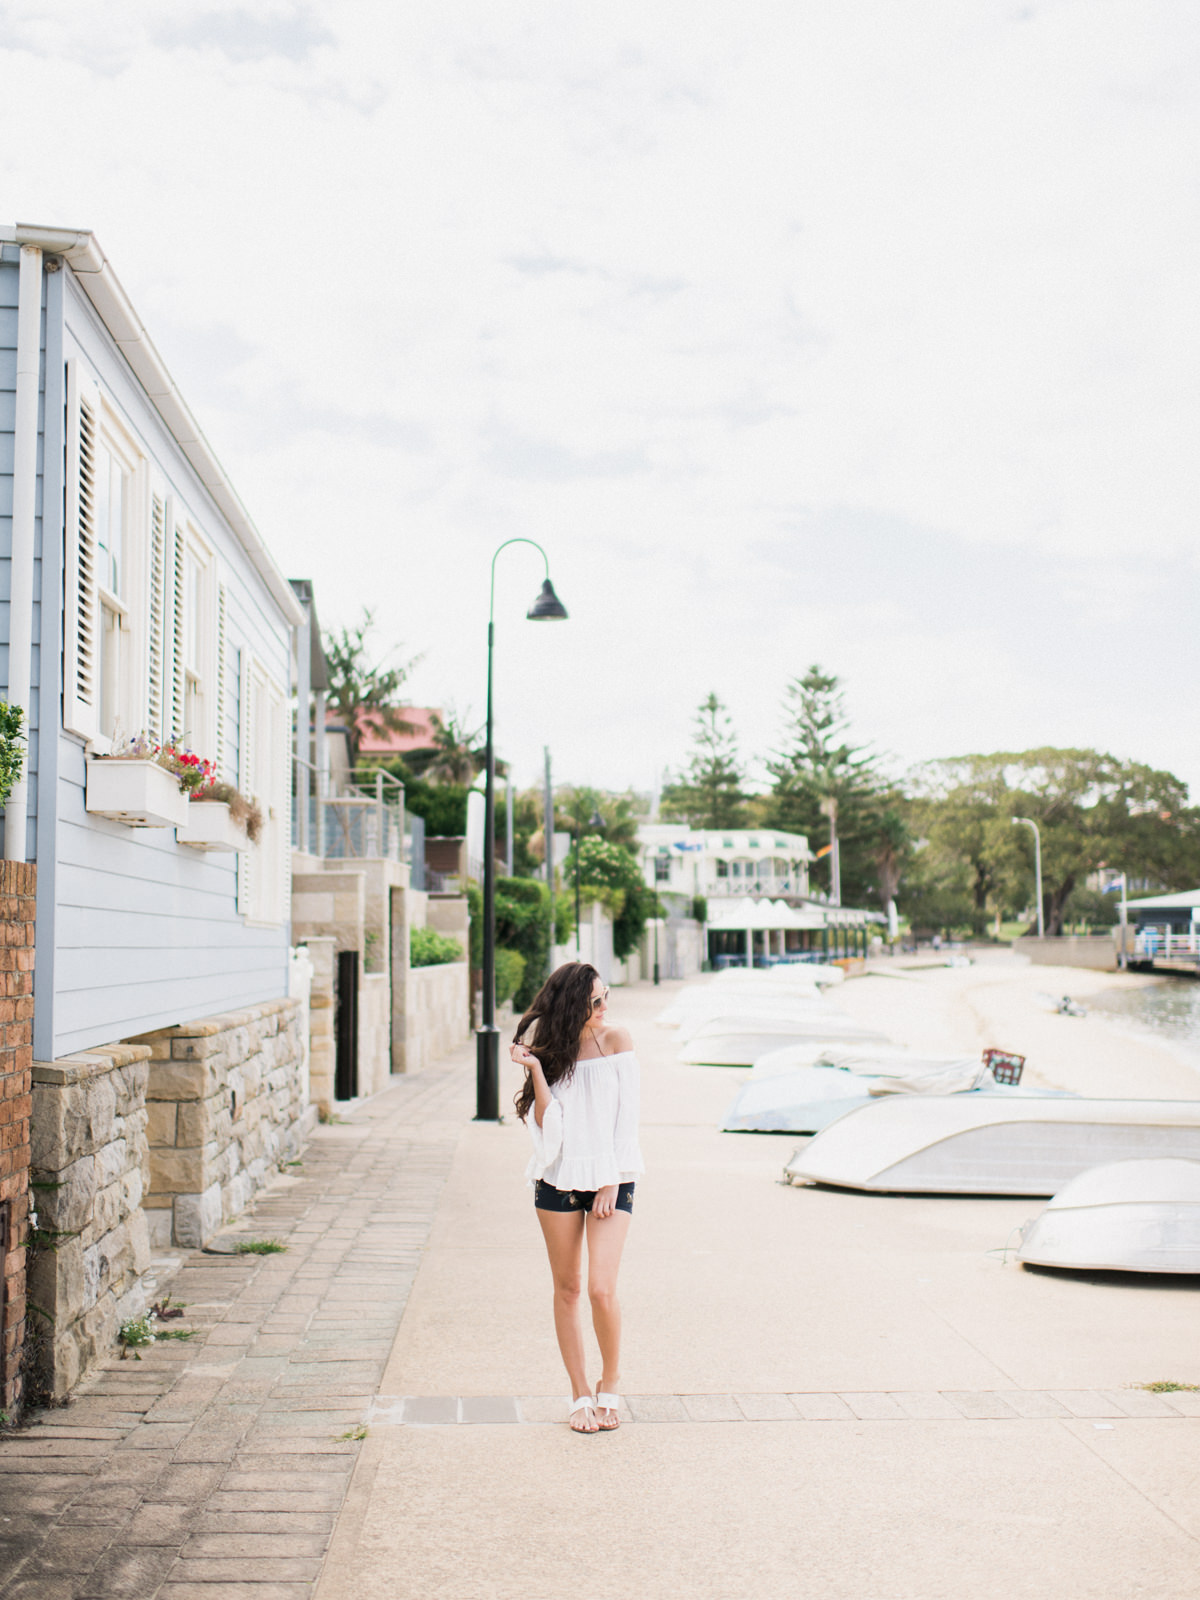 sydney australia, watsons bay, zara, summer outfit ideas, tropical weather, tropical destinations